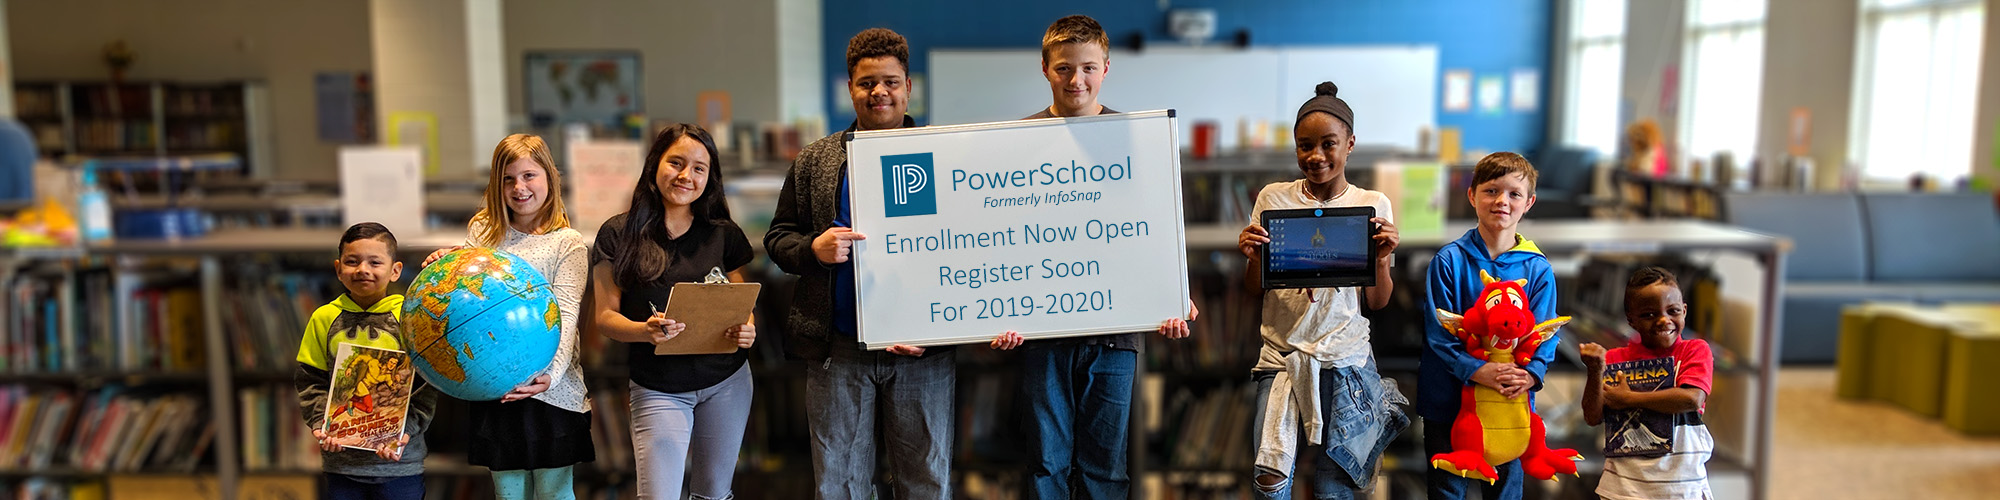 Students holding various school paraphernalia, including a sign that reads PowerSchool, Formerly InfoSnap, Enrollment Now open. Register soon for 2019-2020!